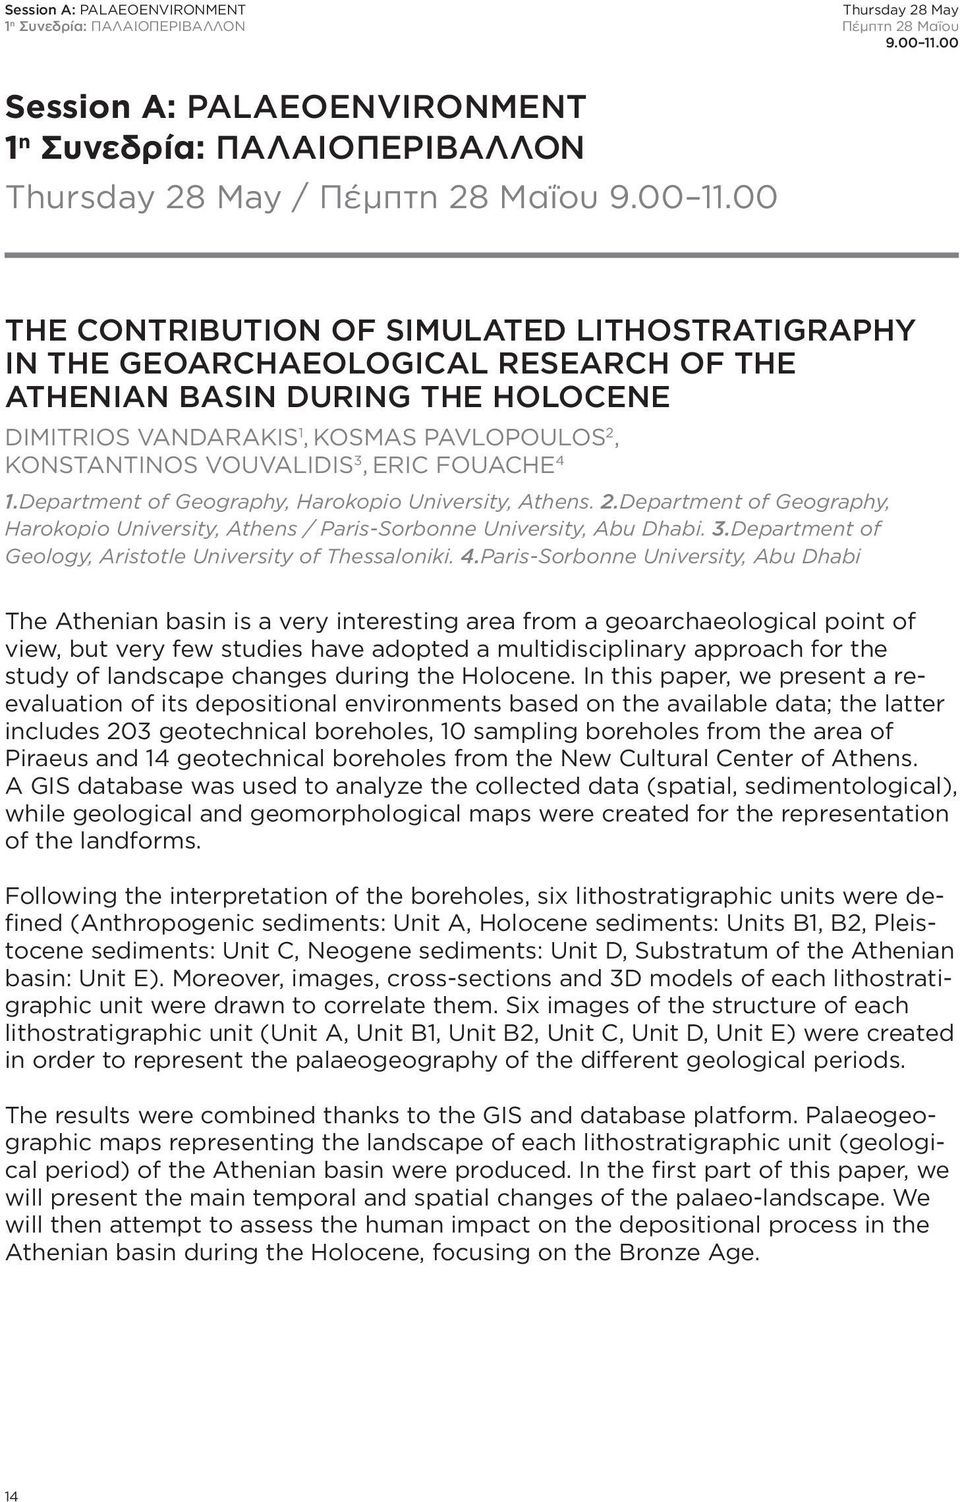 00 THE CONTRIBUTION OF SIMULATED LITHOSTRATIGRAPHY IN THE GEOARCHAEOLOGICAL RESEARCH OF THE ATHENIAN BASIN DURING THE HOLOCENE DIMITRIOS VANDARAKIS 1, KOSMAS PAVLOPOULOS 2, KONSTANTINOS VOUVALIDIS 3,